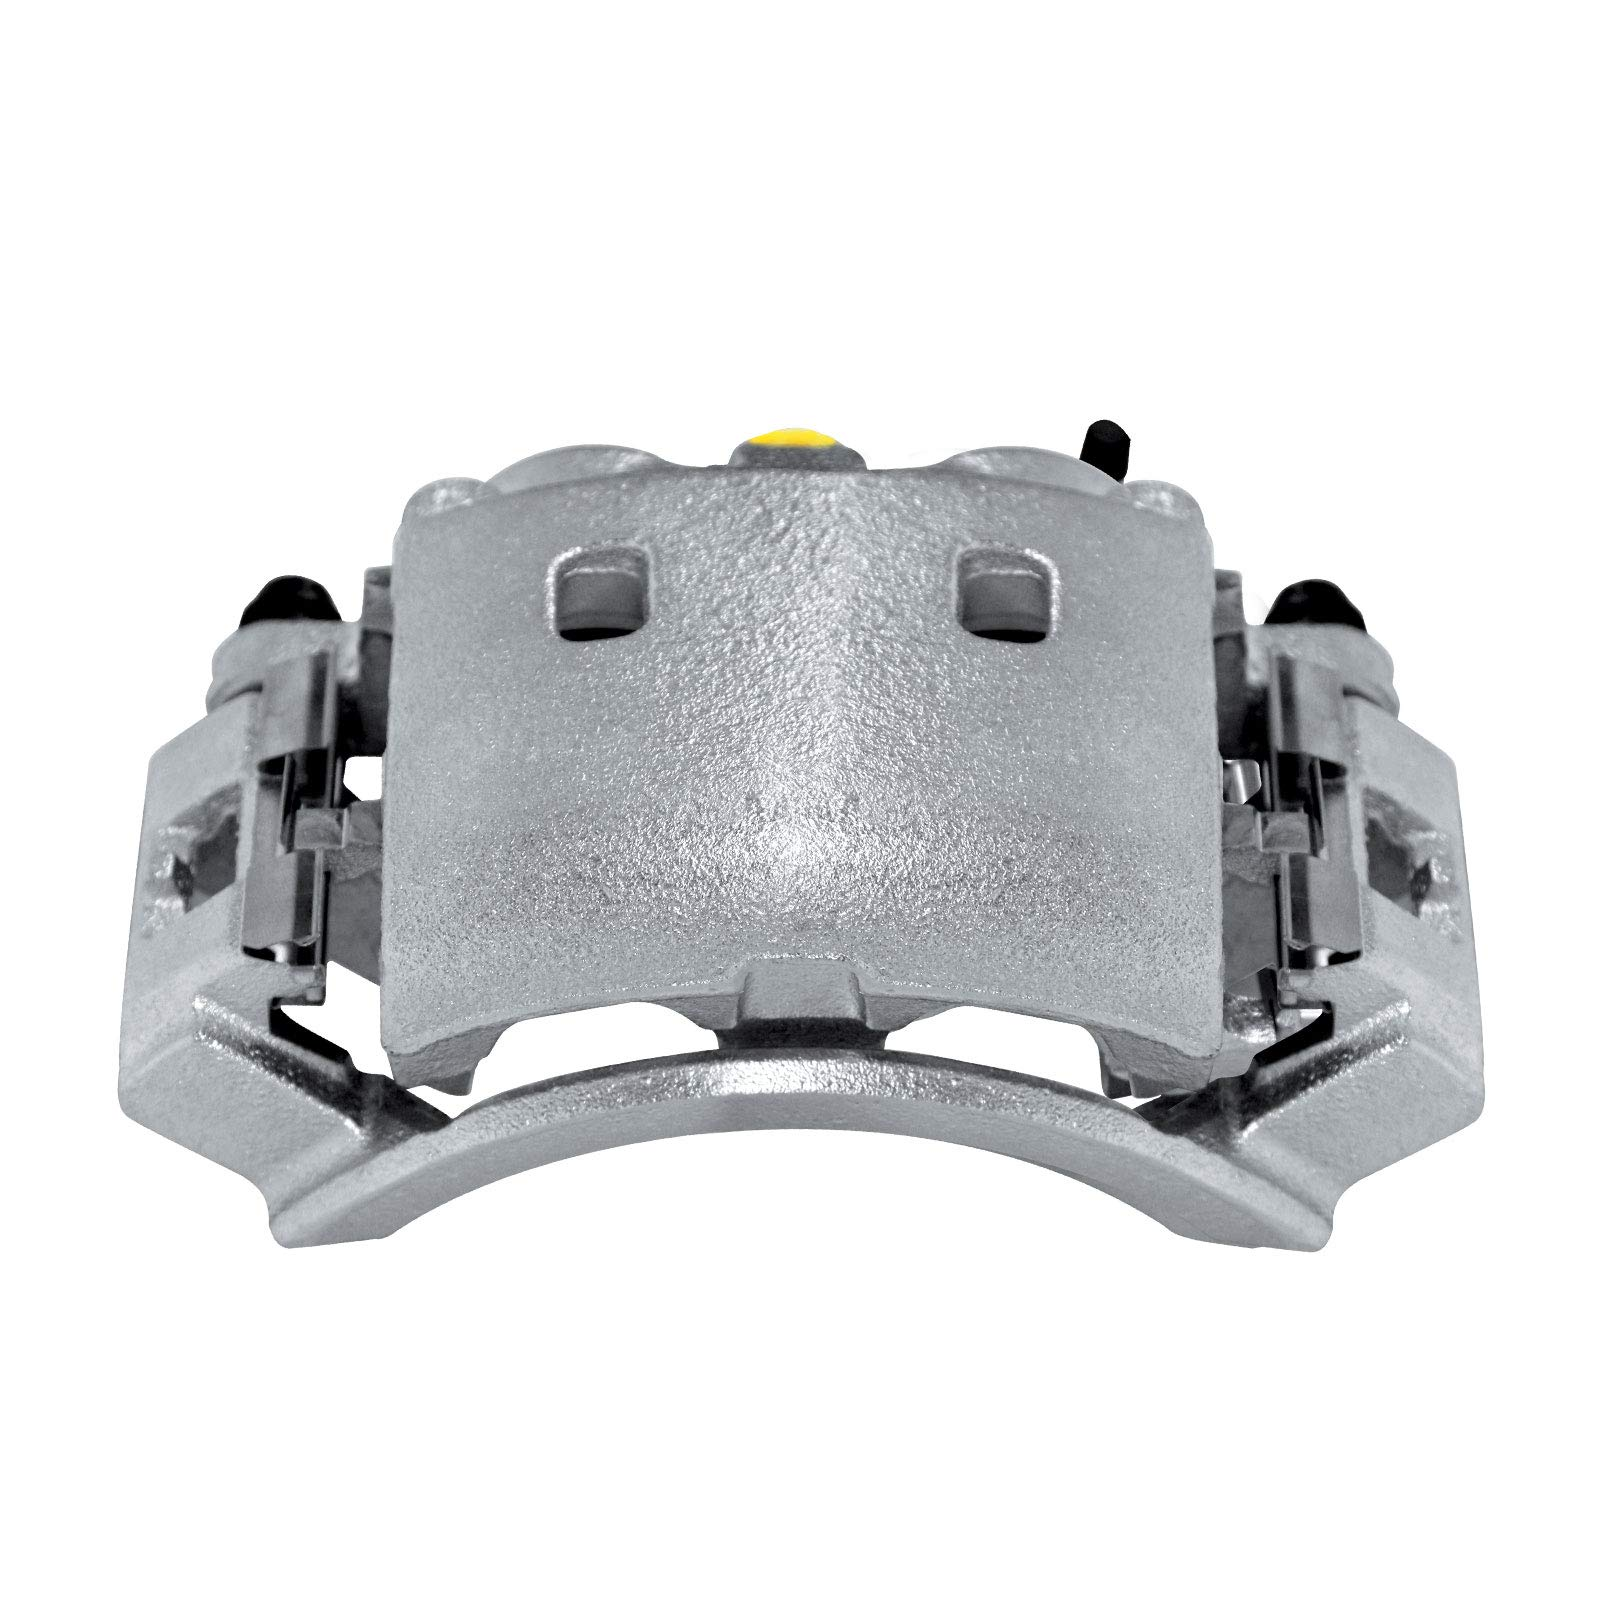 Brake Caliper Unloaded Cardone 18-B4638A Remanufactured Domestic Friction Ready